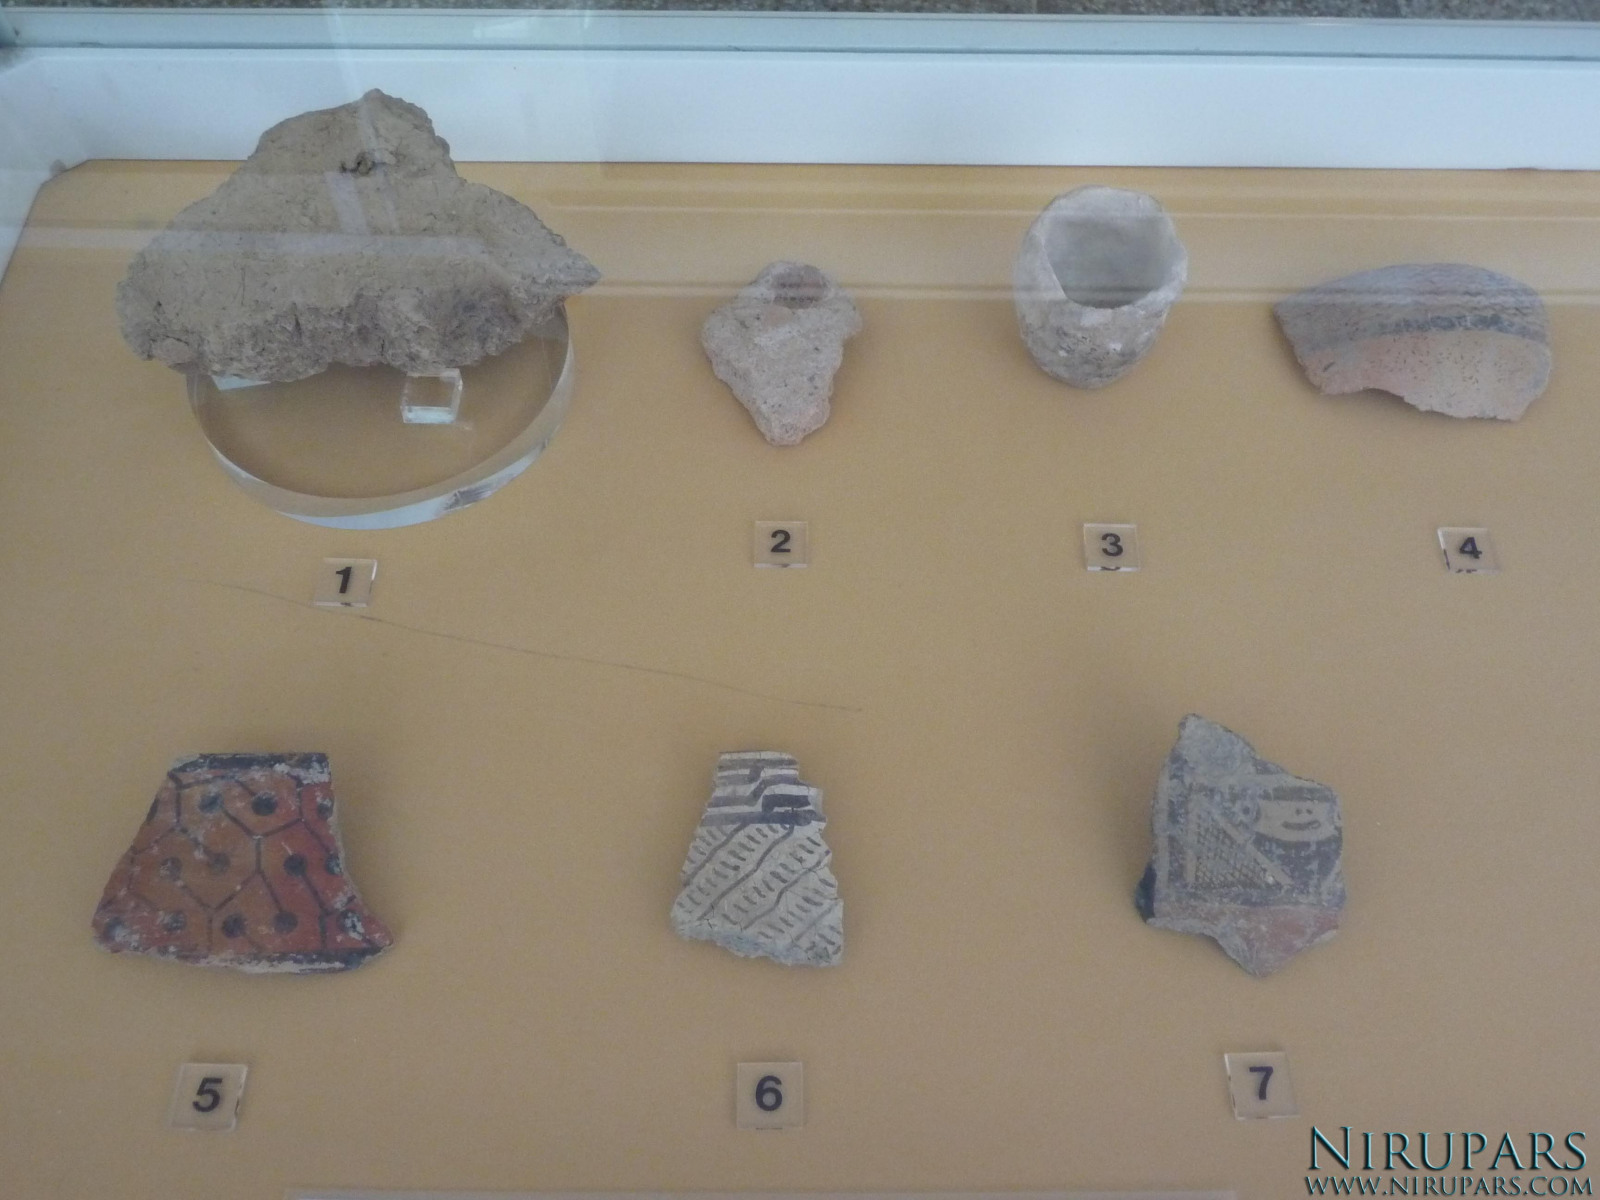 National Museum of Iran - Ceramic Objects Fragments